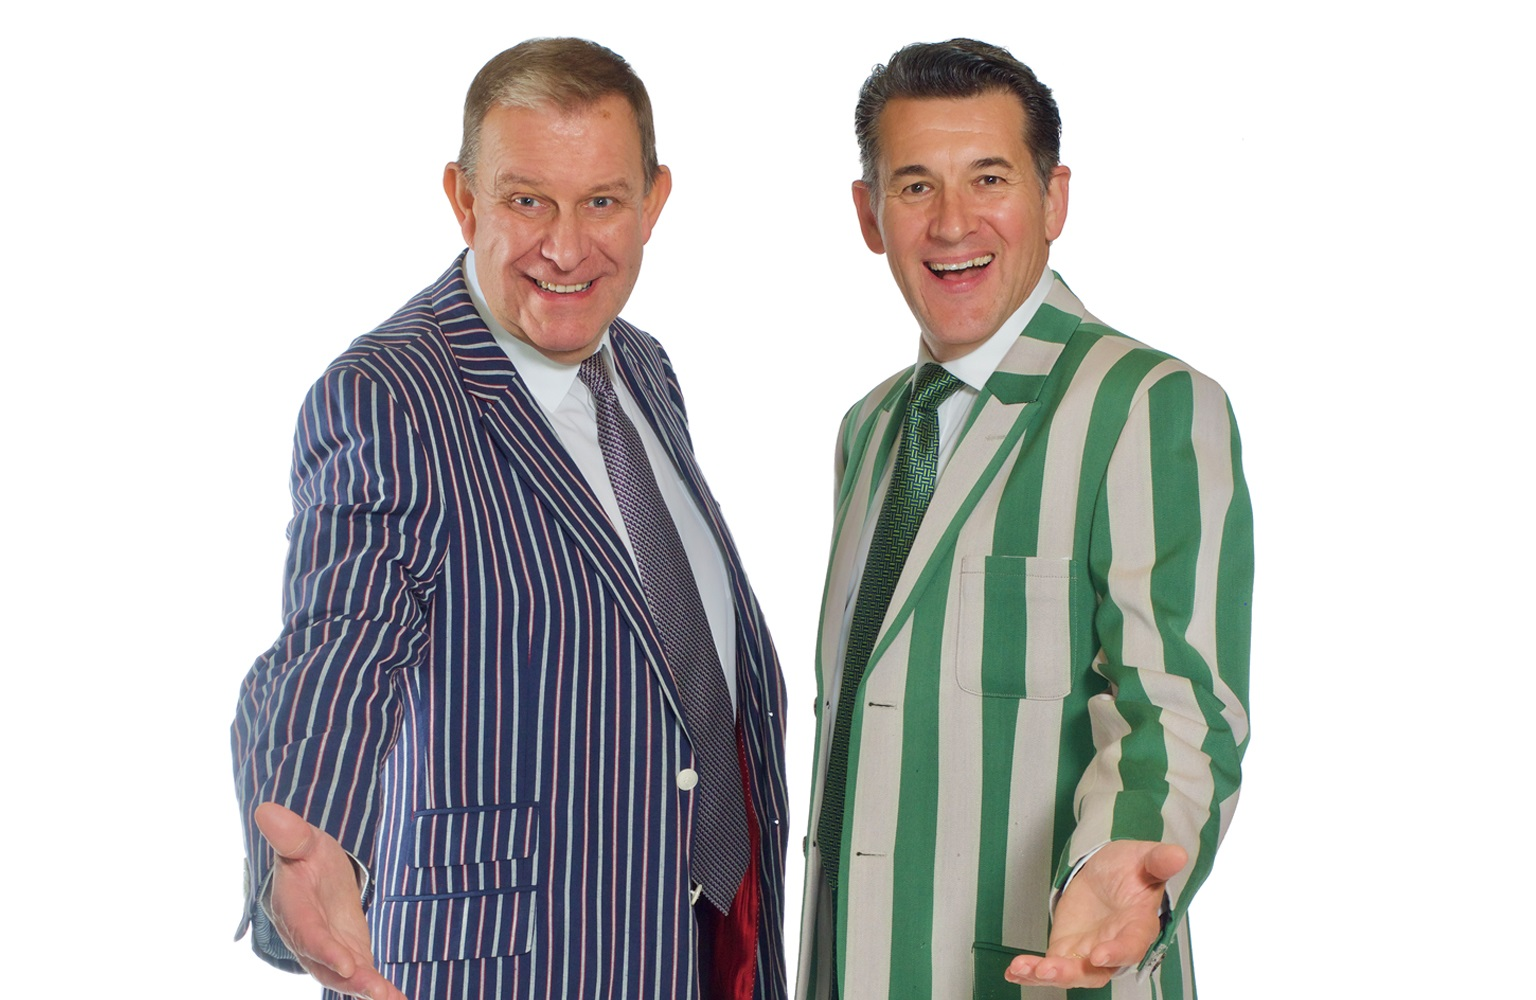 Comedy, magic and accordians: Meet Olly and Nigel from Potters Laughter Show